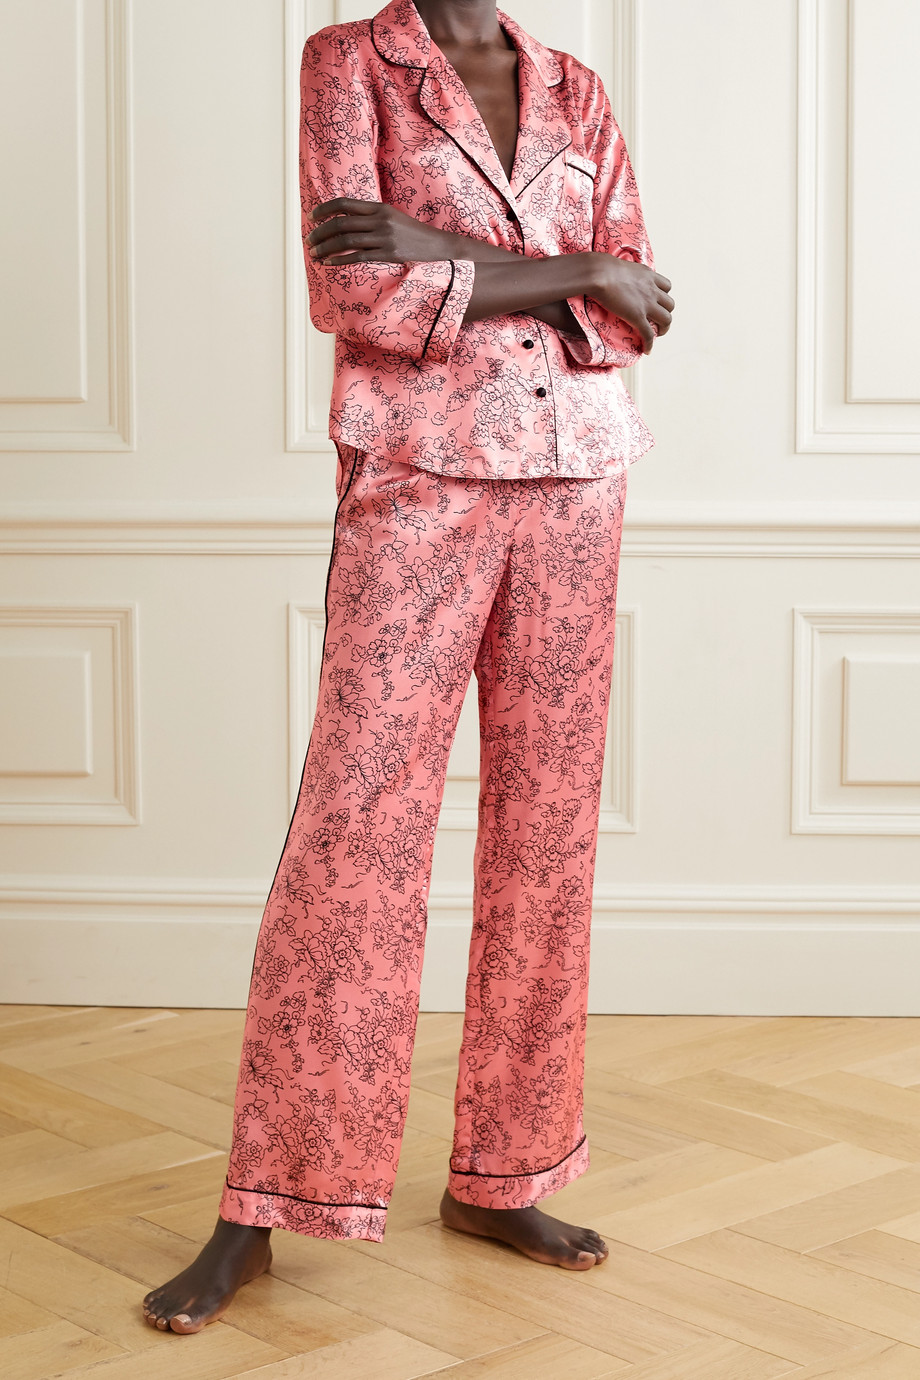 MORGAN LANE Parker piped floral-print satin pajama pants